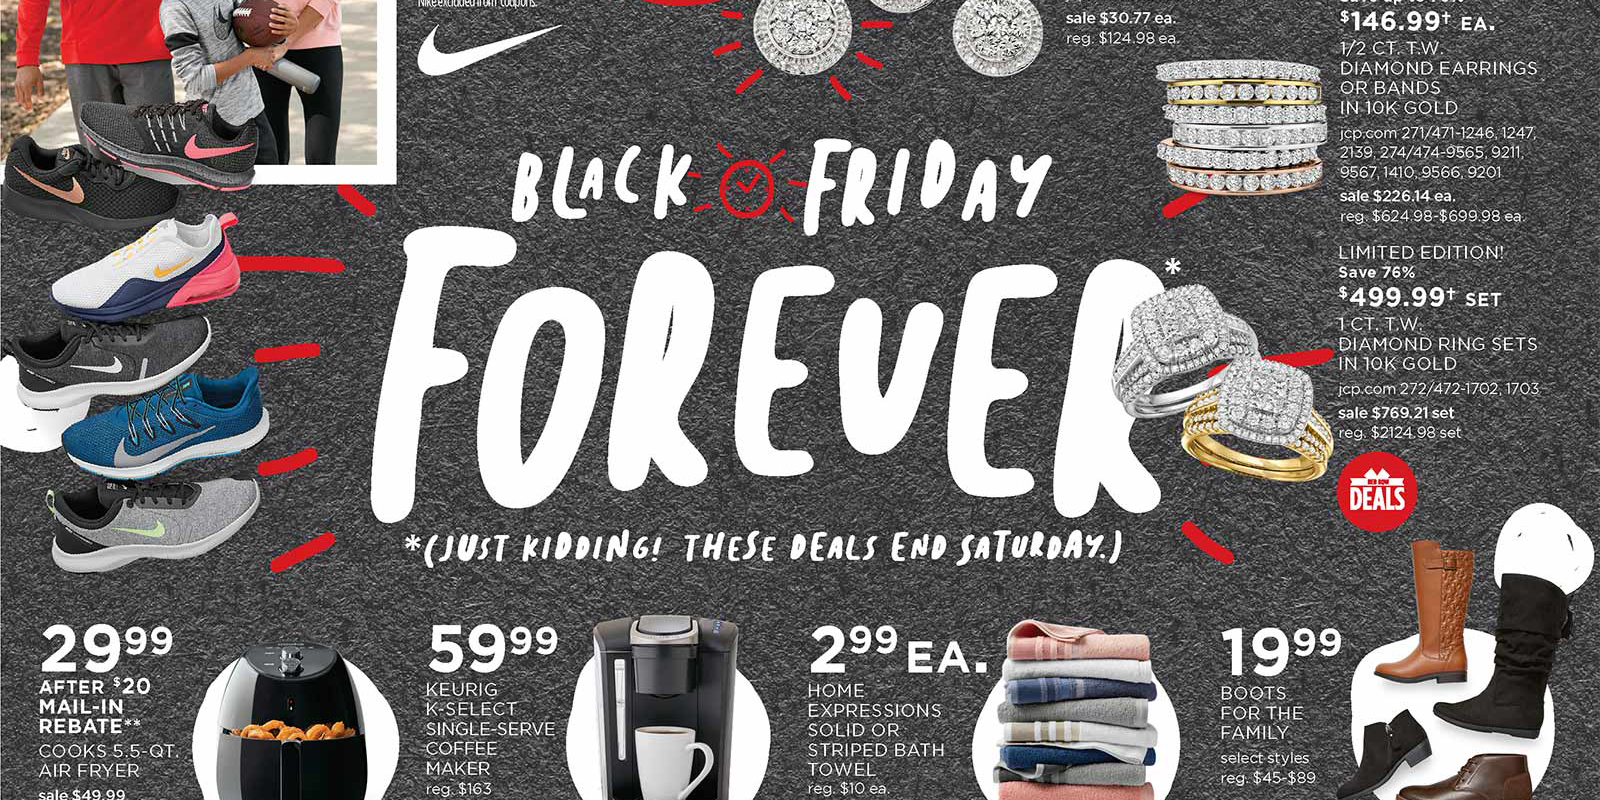 Jcpenney Black Friday Ad 2019 Ninja Keurig Cash Doorbusters More 9to5toys